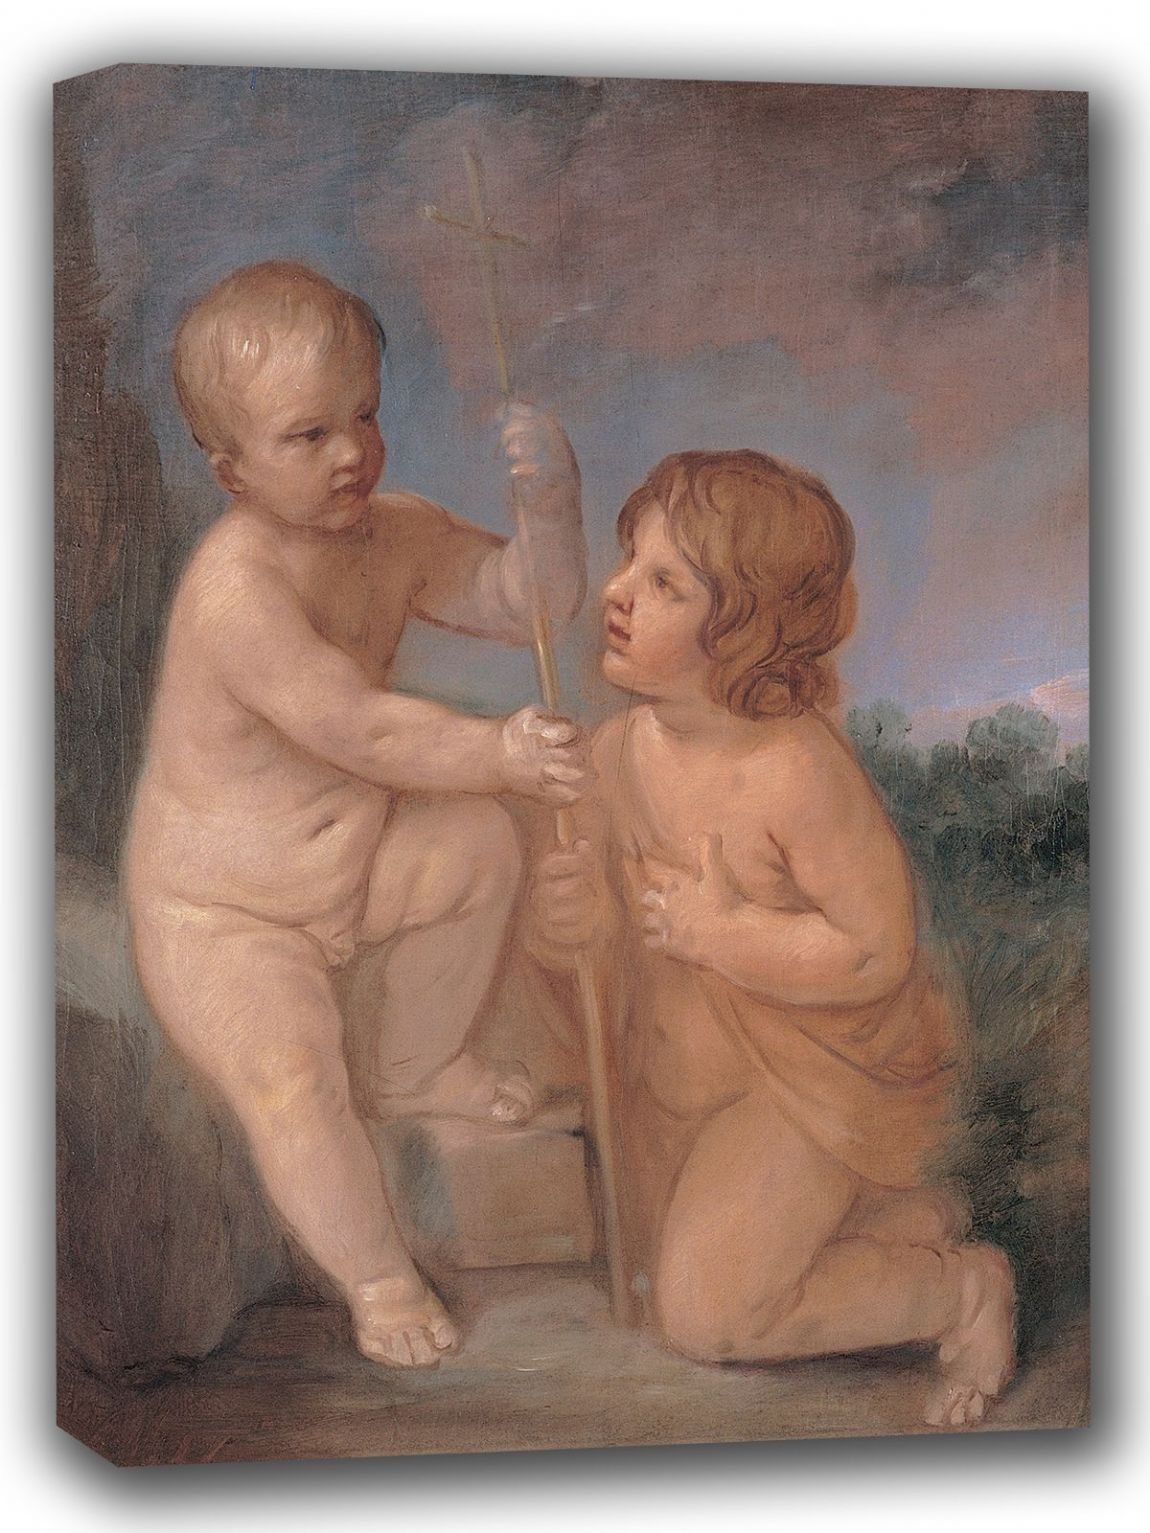 Reni, Guido: The Infant Jesus and St. (Saint) John. Fine Art Canvas. Sizes: A4/A3/A2/A1 (002101)